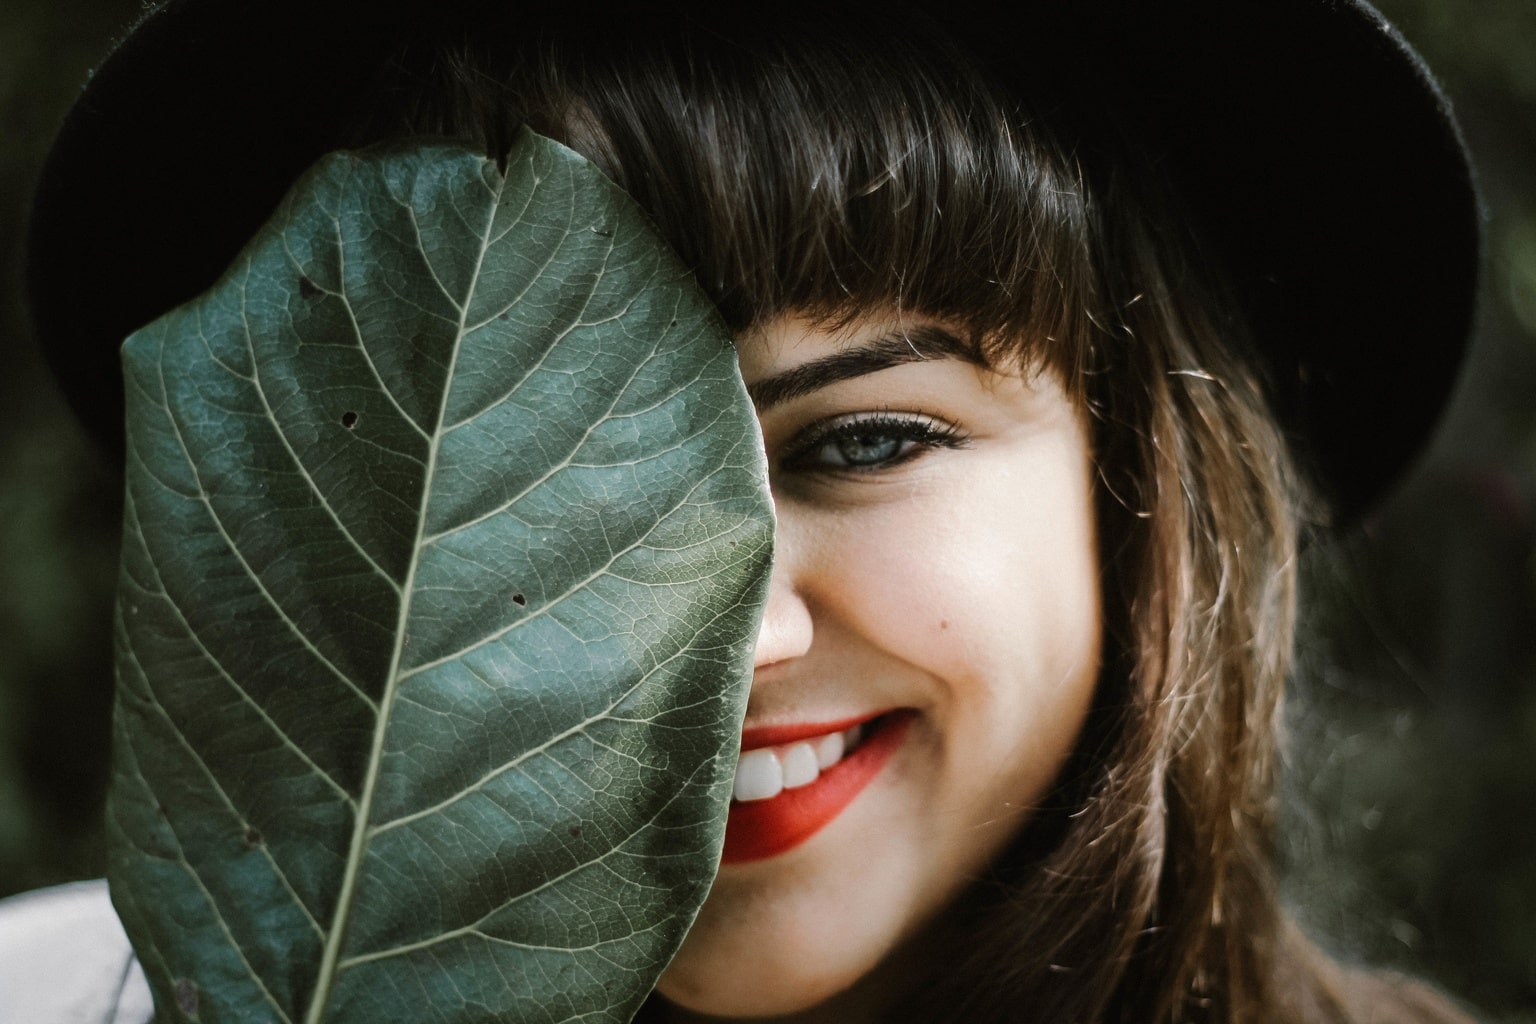 Woman wearing red lipstick and covering half of her face with a leaf